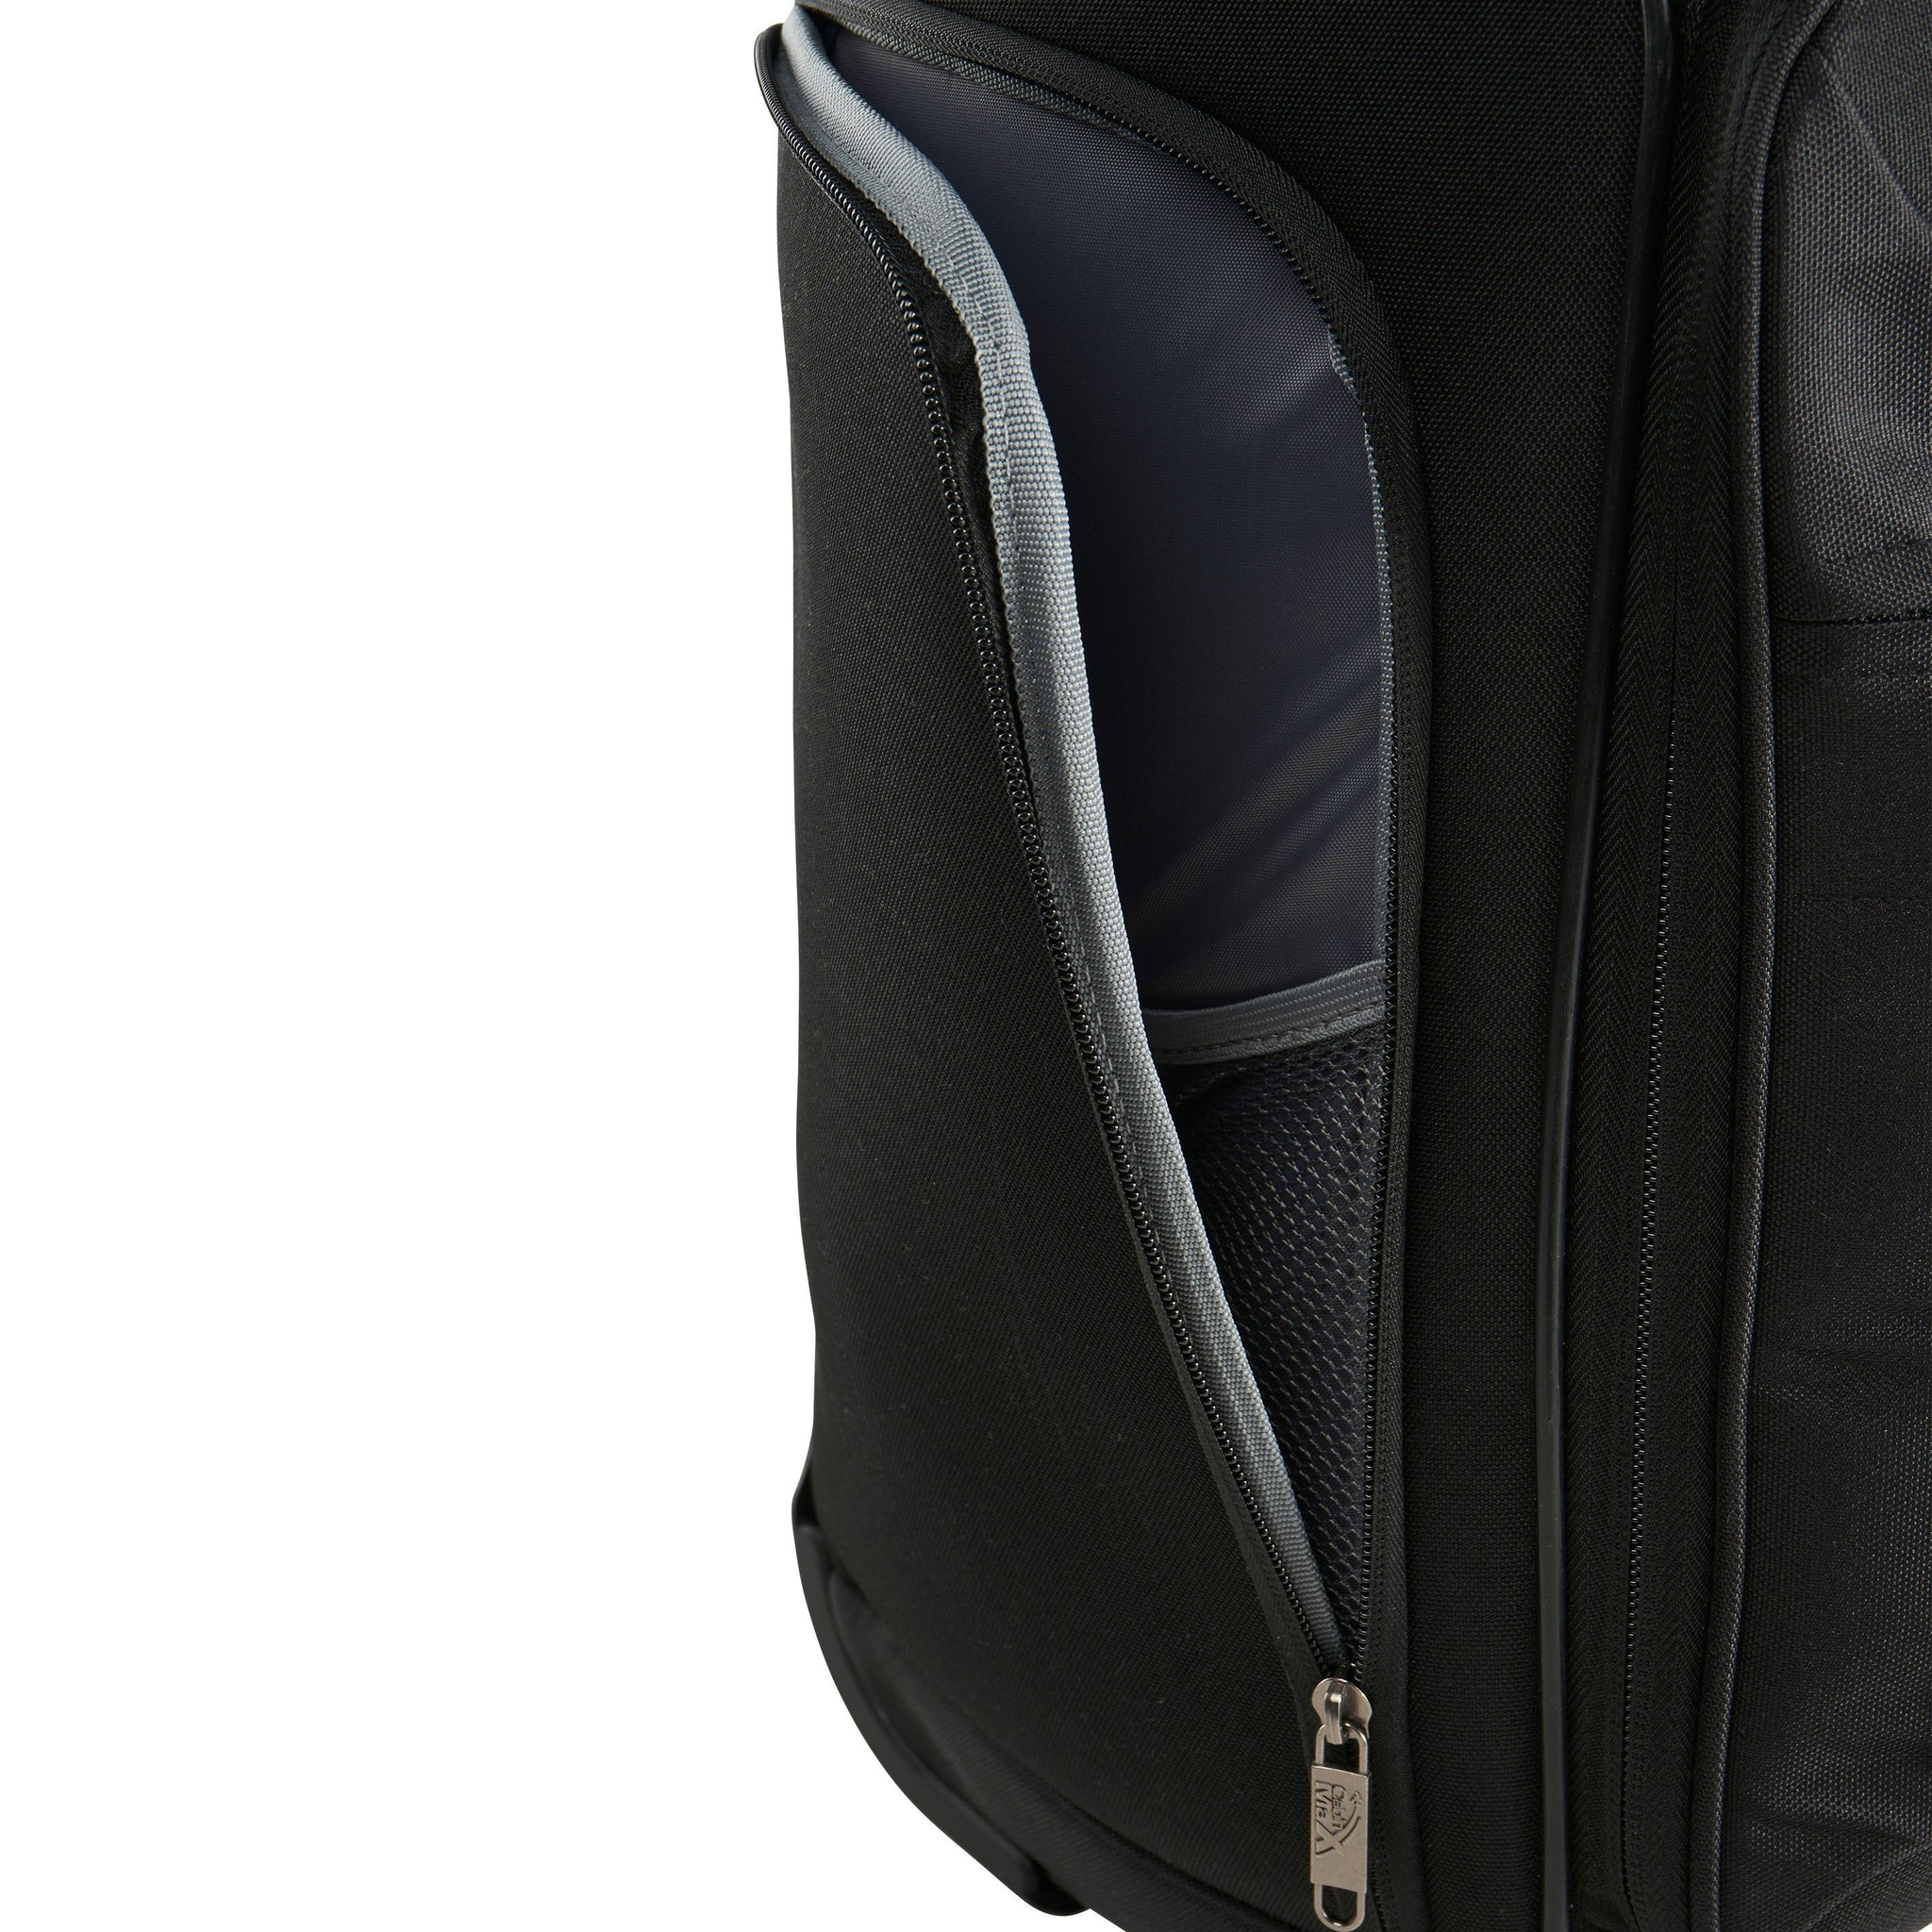 Bagages de Chariot sous Le Si/ège 20L Cabin Max Narvik Stowaway Sac 40x20x25 ryanair/